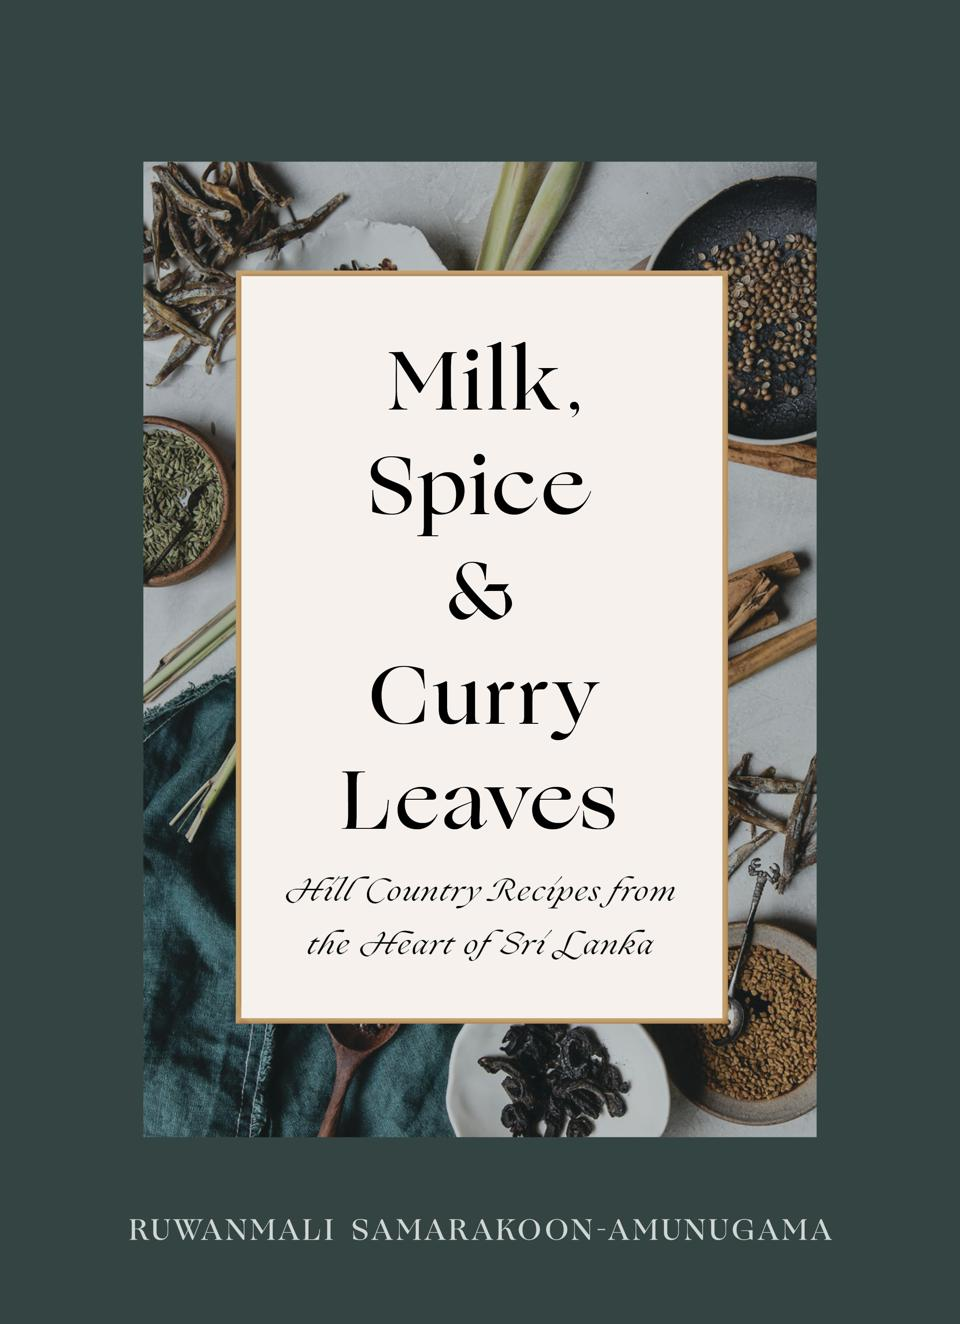 Milk, Spice and Curry Leaves: Hill Country Recipes from the Heart of Sri Lanka